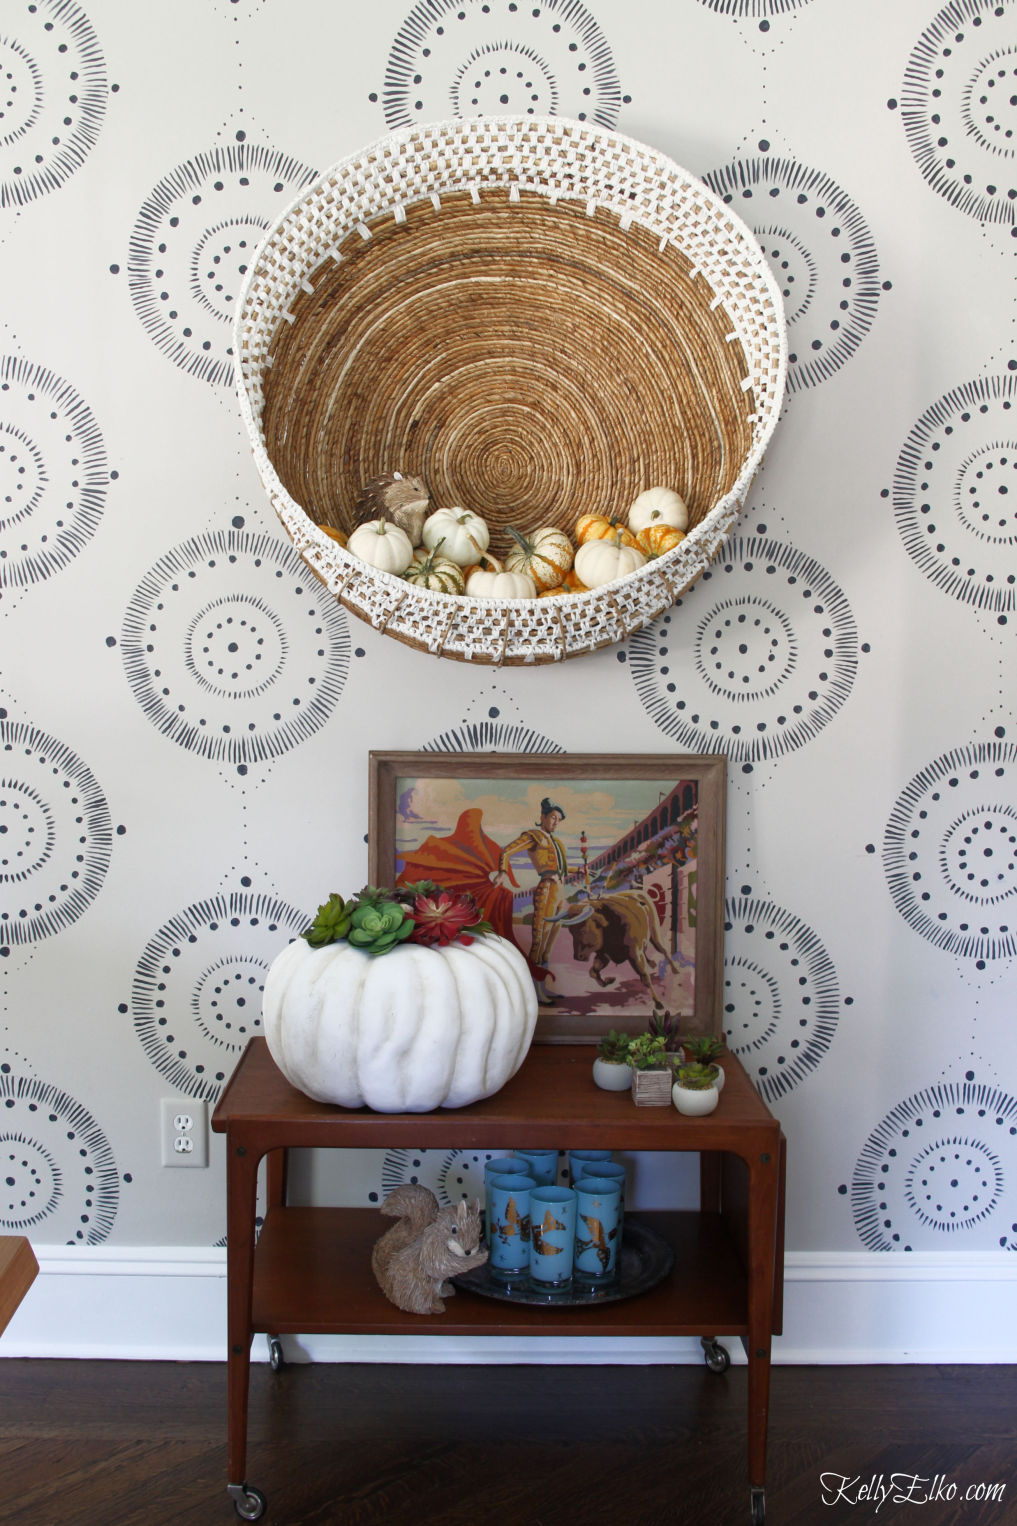 Love this boho wall basket and bar cart styled for fall kellyelko.com #fall #falldecor #pumpkins #pumpkindecor #vintagedecor #barcart #autumndecor #eclecticdecor #bohodecor